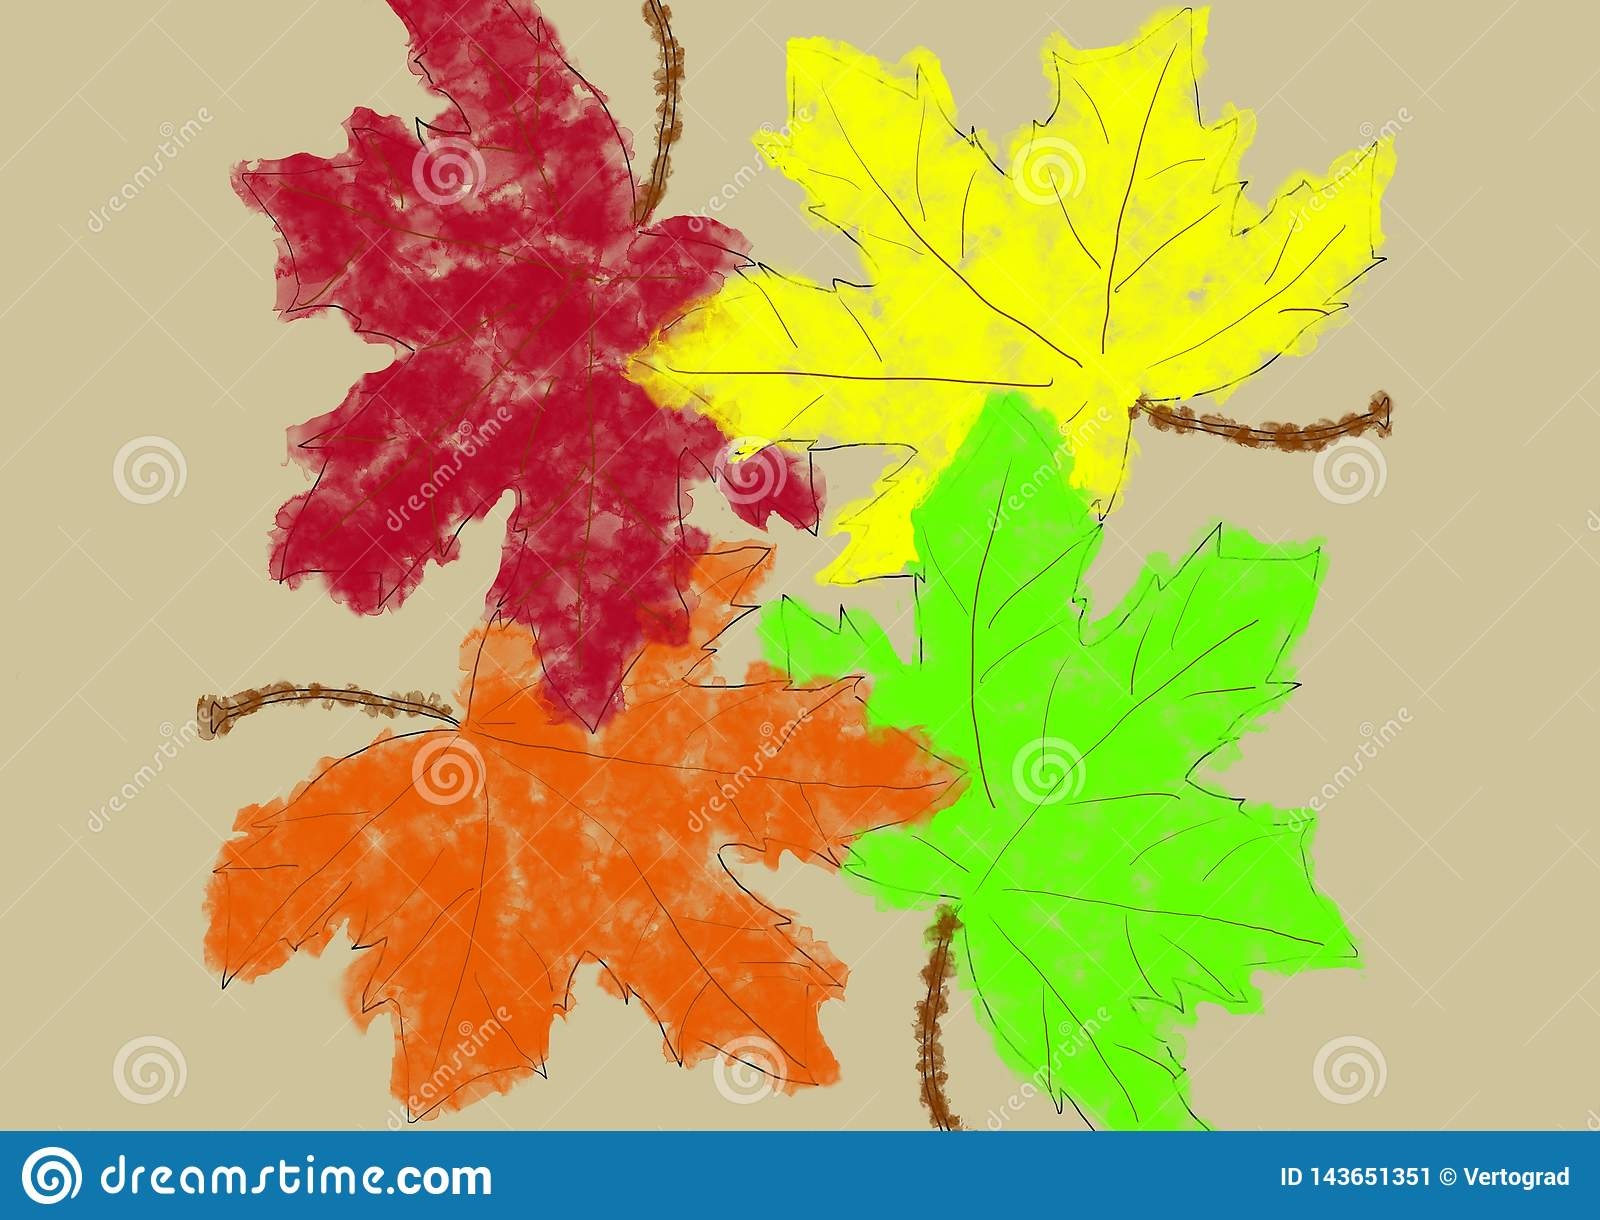 Background colorful maple leaves in an abstract style